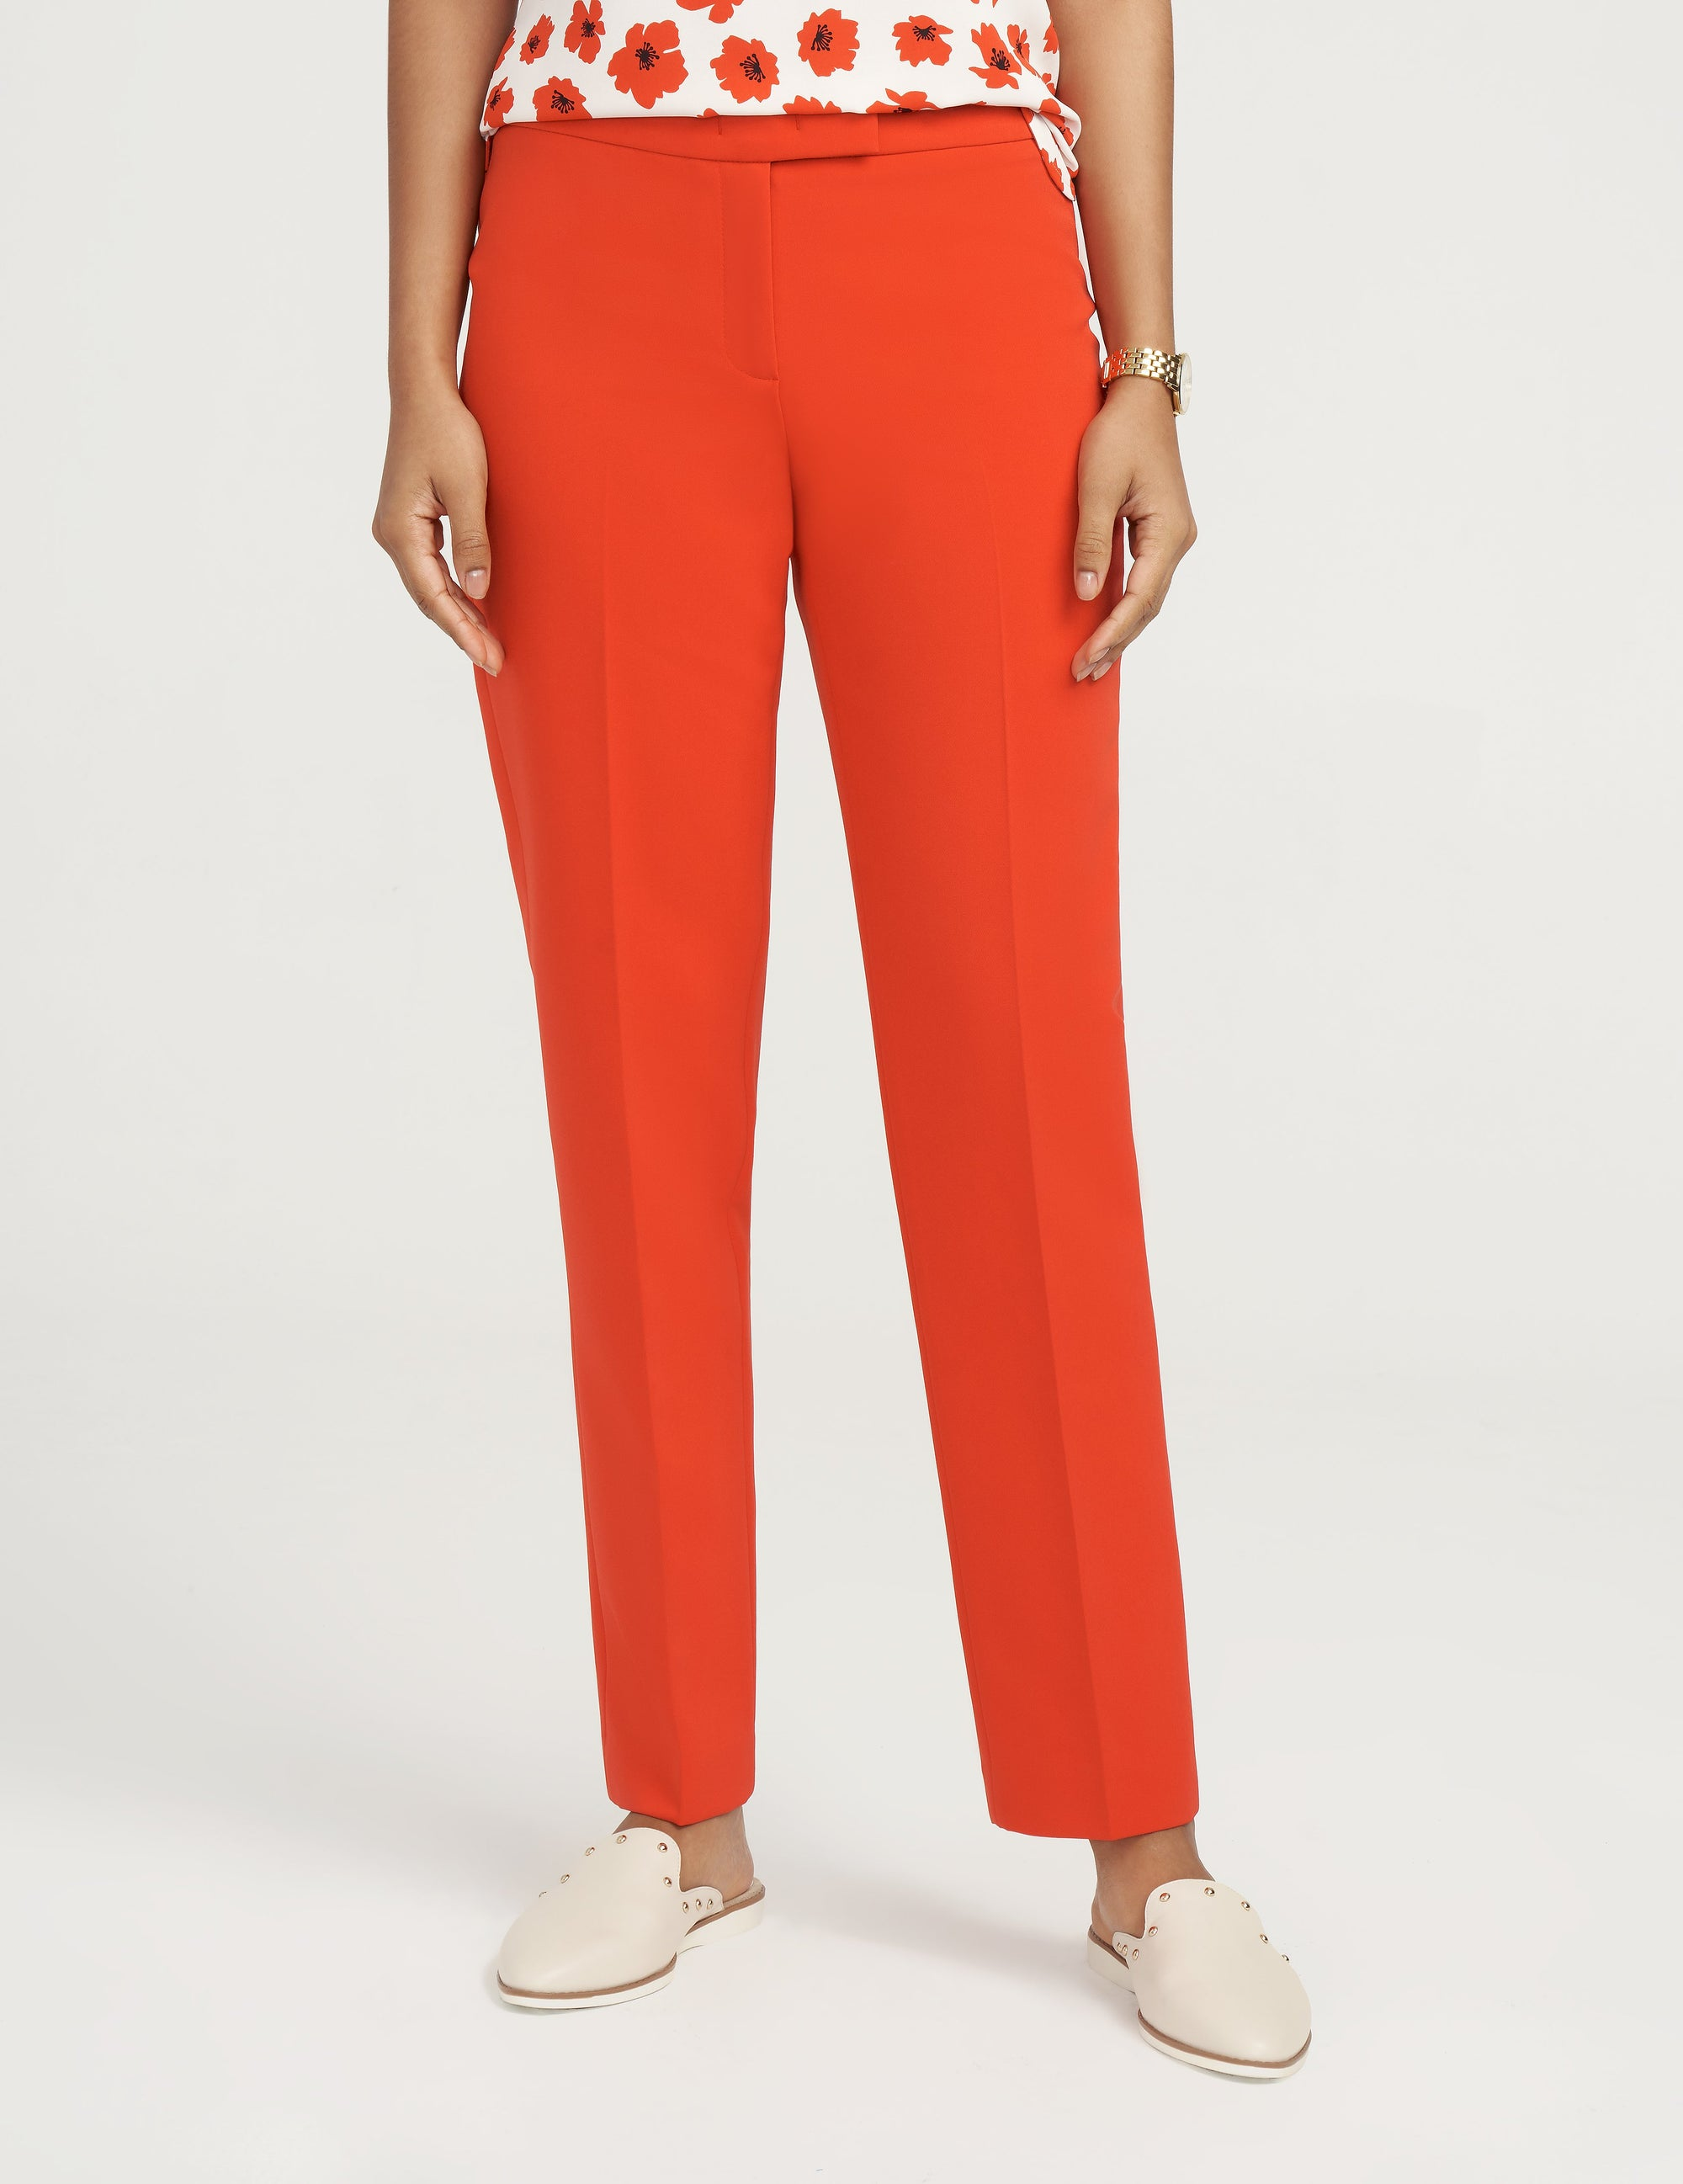 Anne Klein Contour Stretch Bowie Pant Poppy